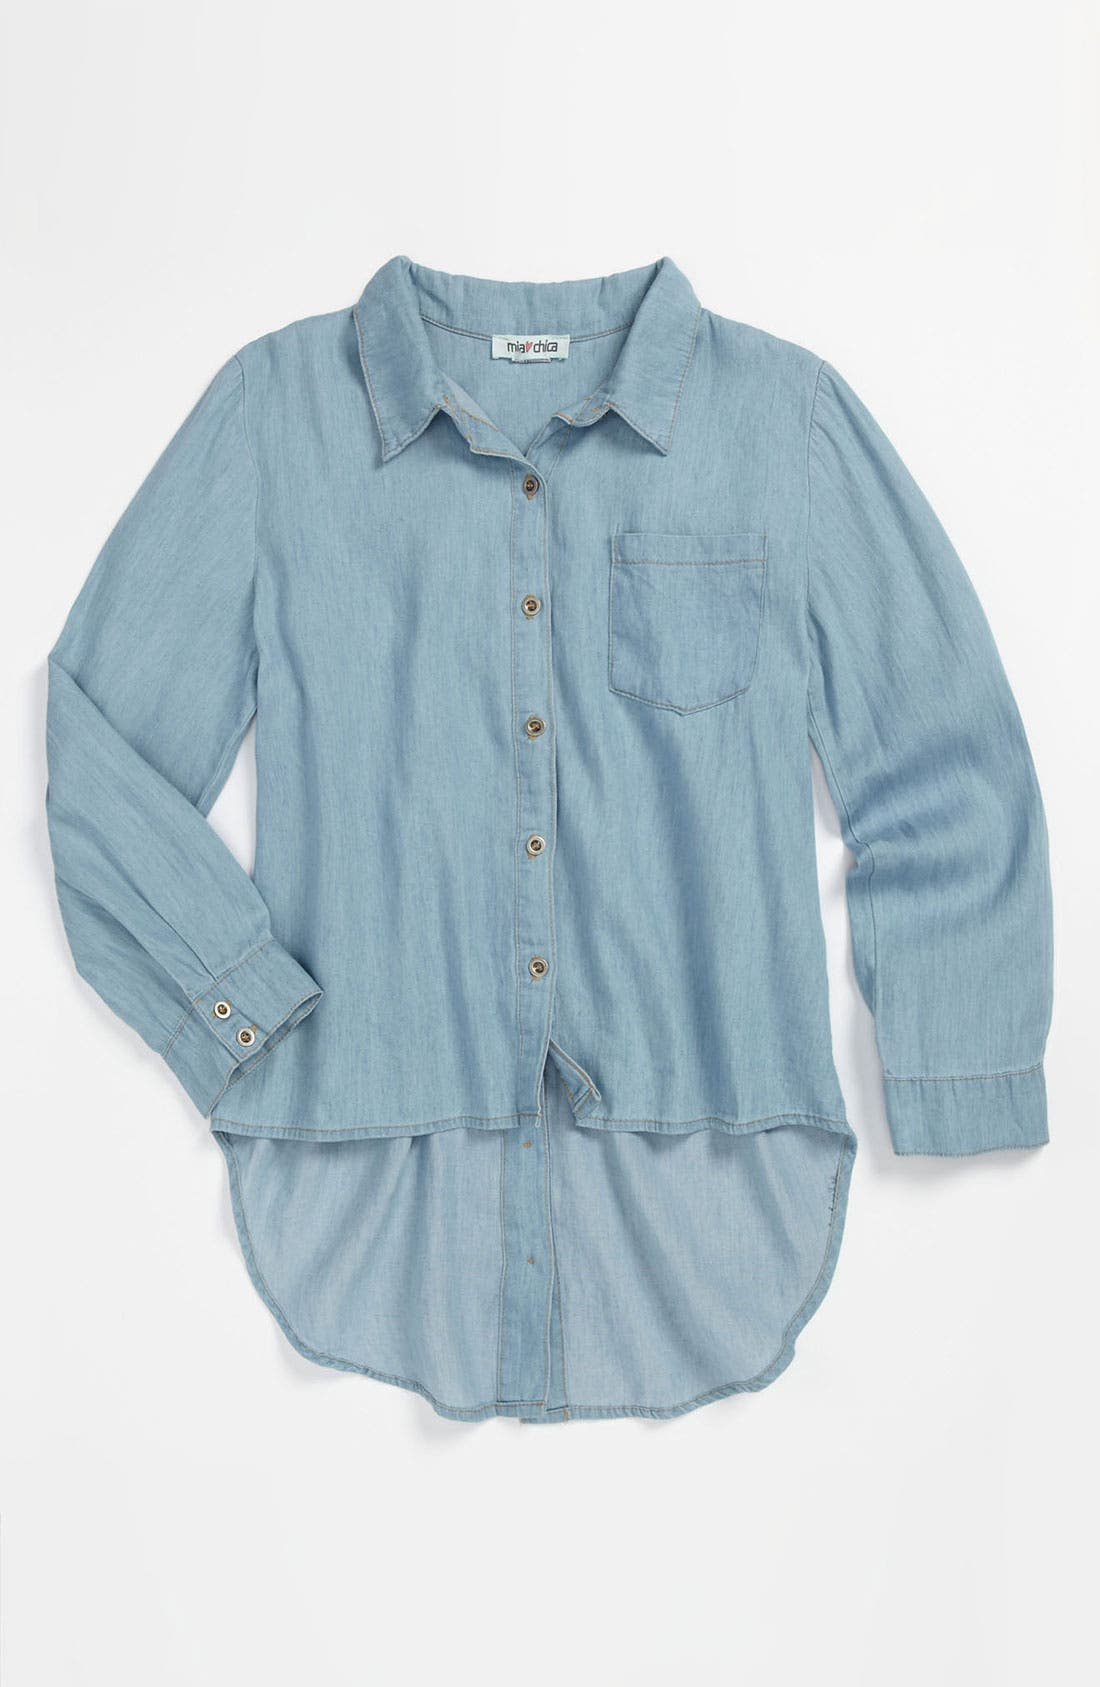 Alternate Image 1 Selected - Mia Chica Chambray Shirt (Big Girls)